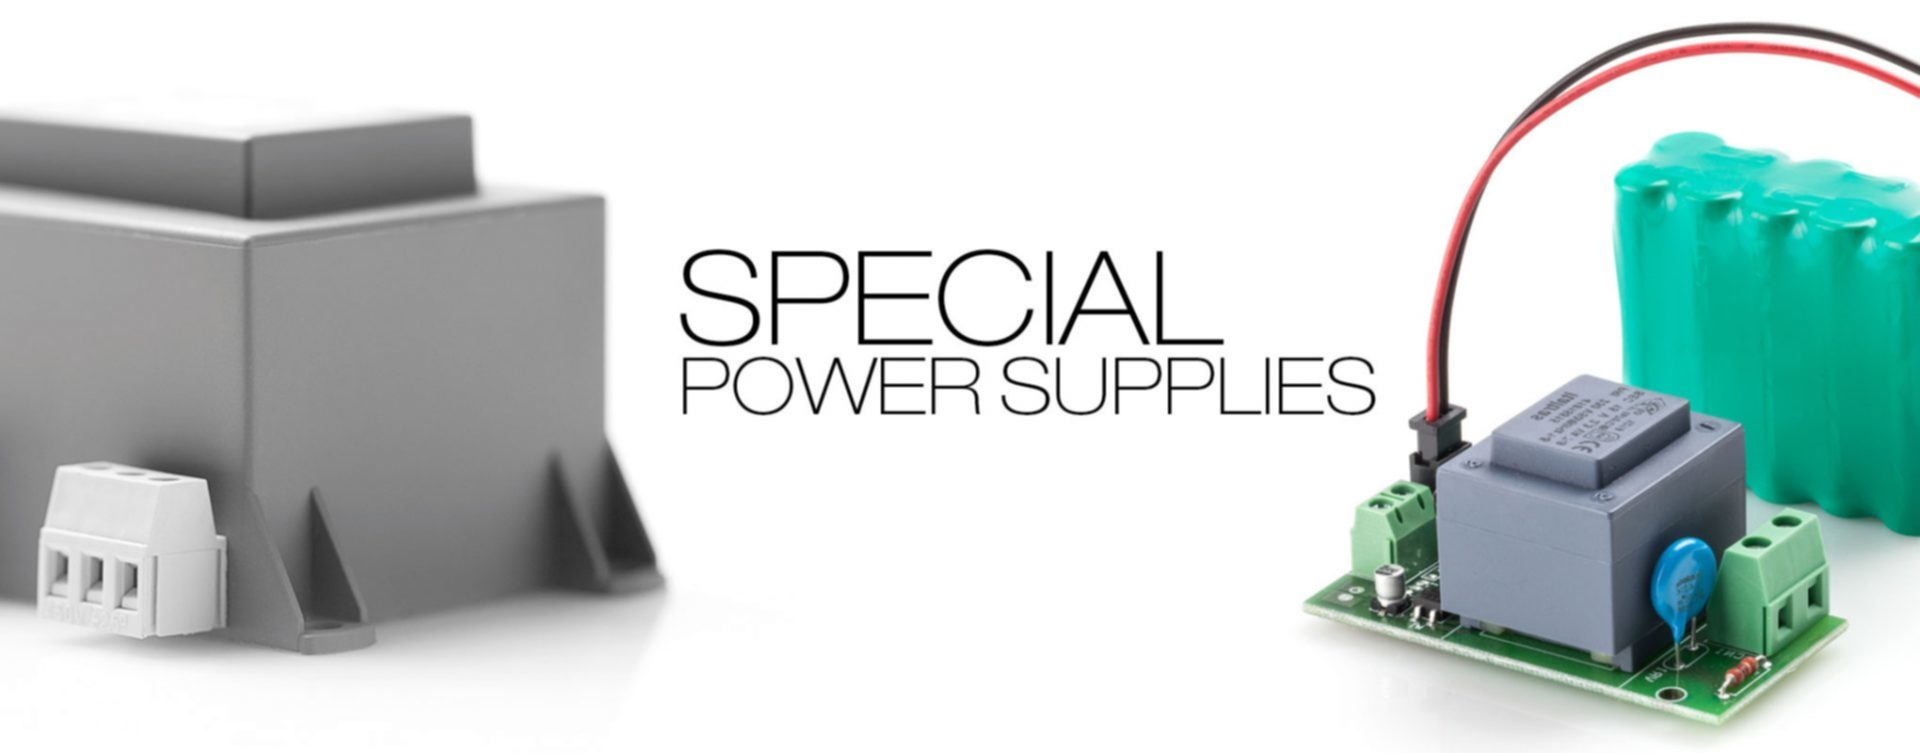 Special power supplies